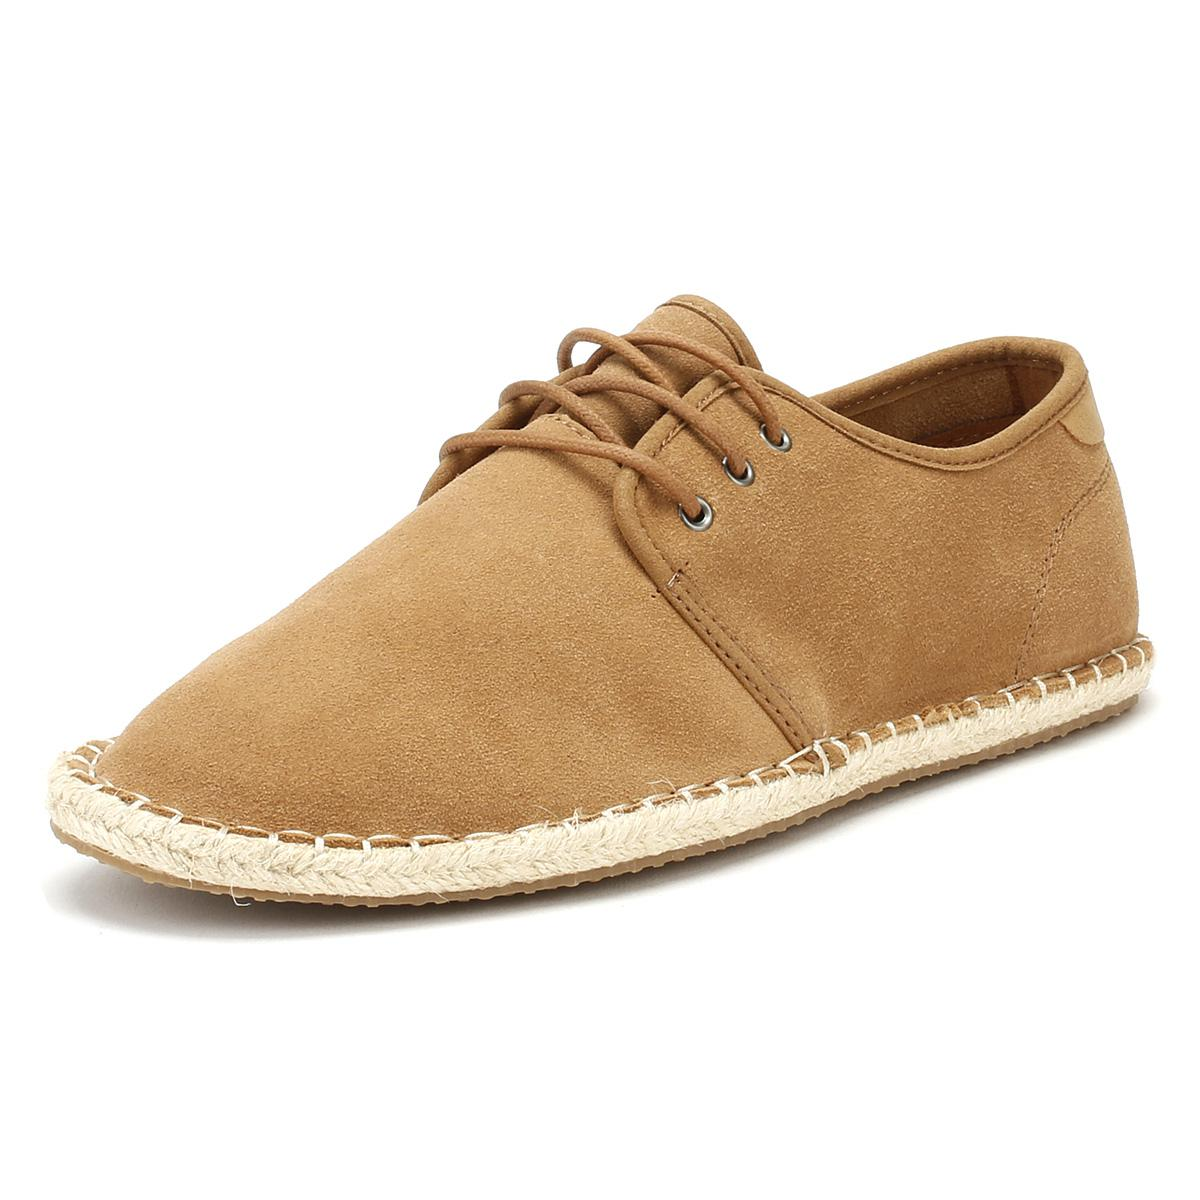 11c922cf407 TOMS - Brown Mens Toffee Diego Espadrilles for Men - Lyst. View fullscreen